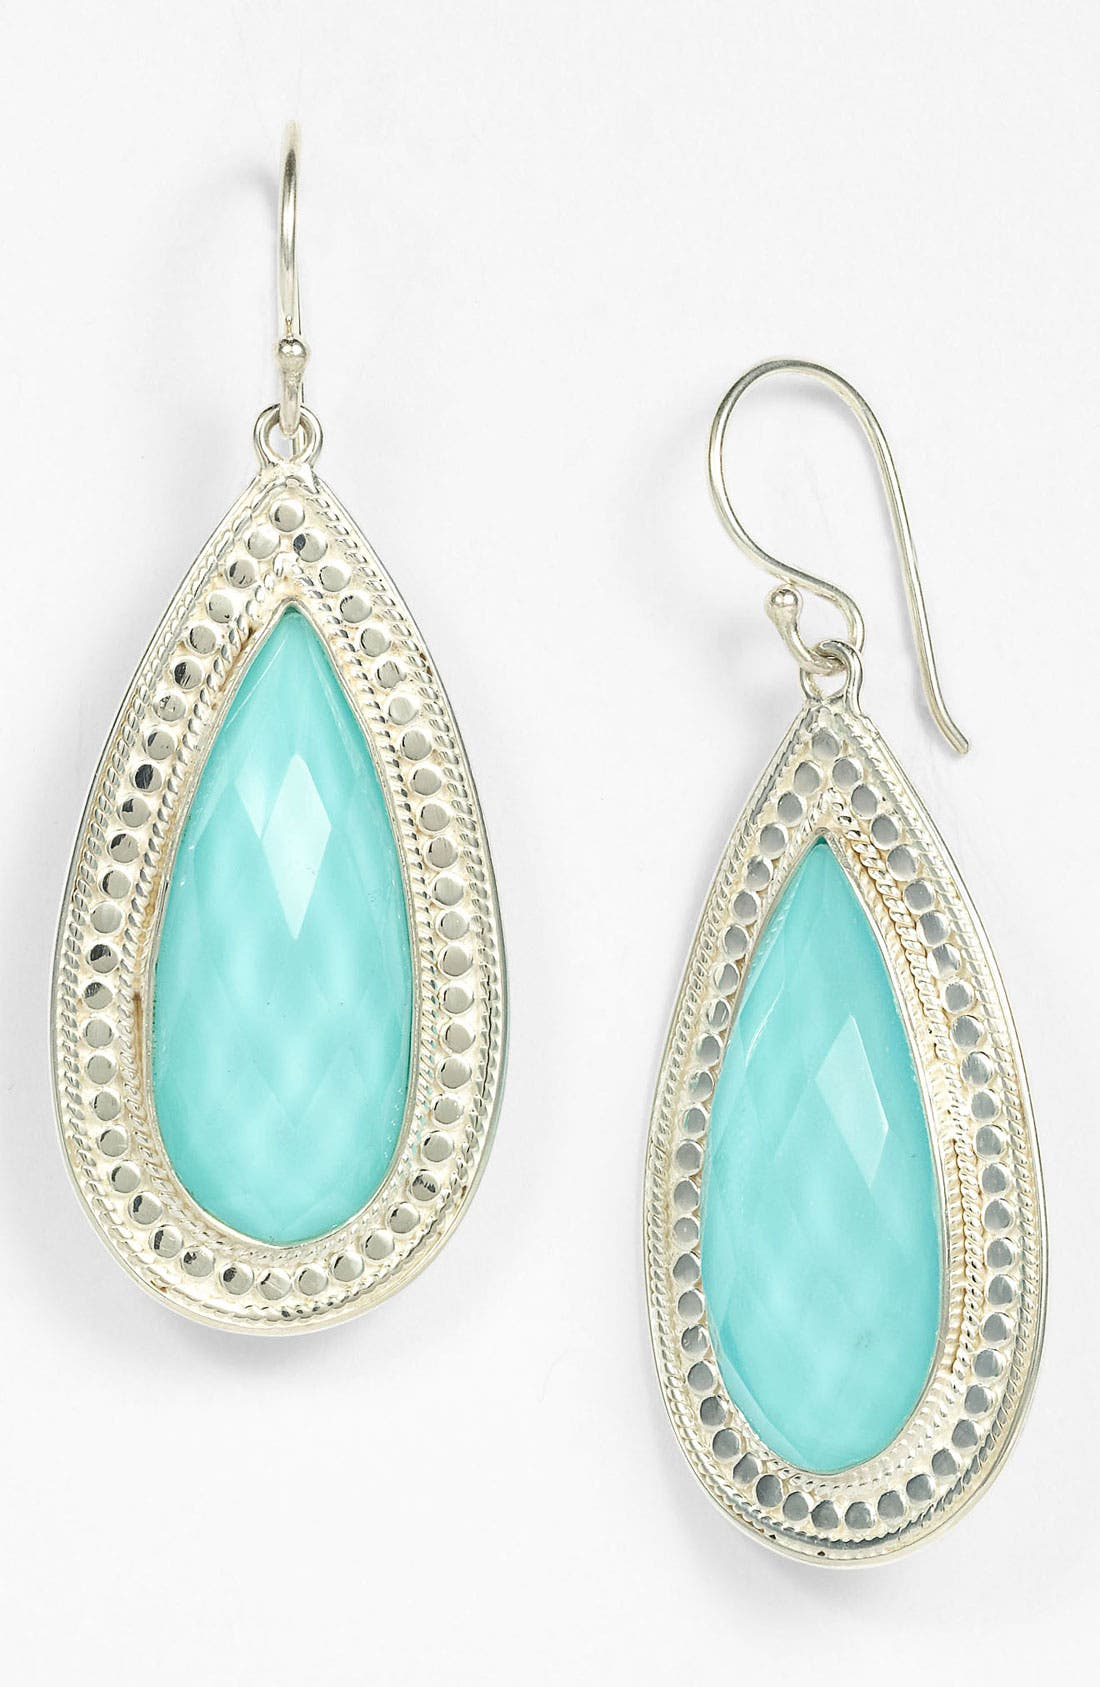 Alternate Image 1 Selected - Anna Beck 'Gili' Teardrop Earrings (Online Only)